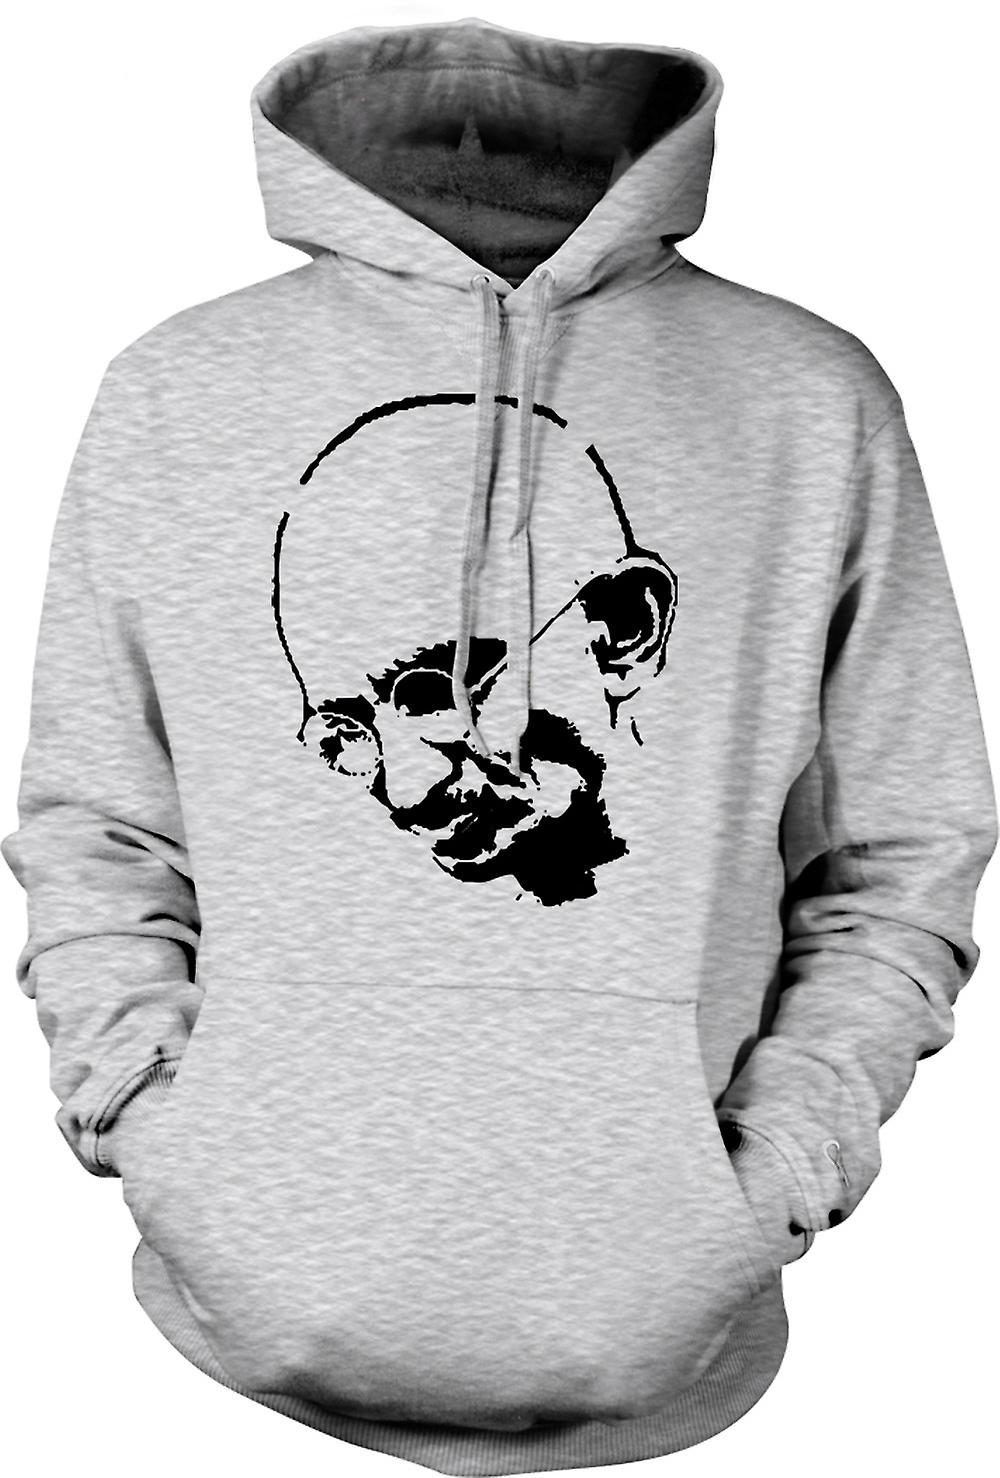 Mens Hoodie - Ghandi - Indian - Hippy - Peace